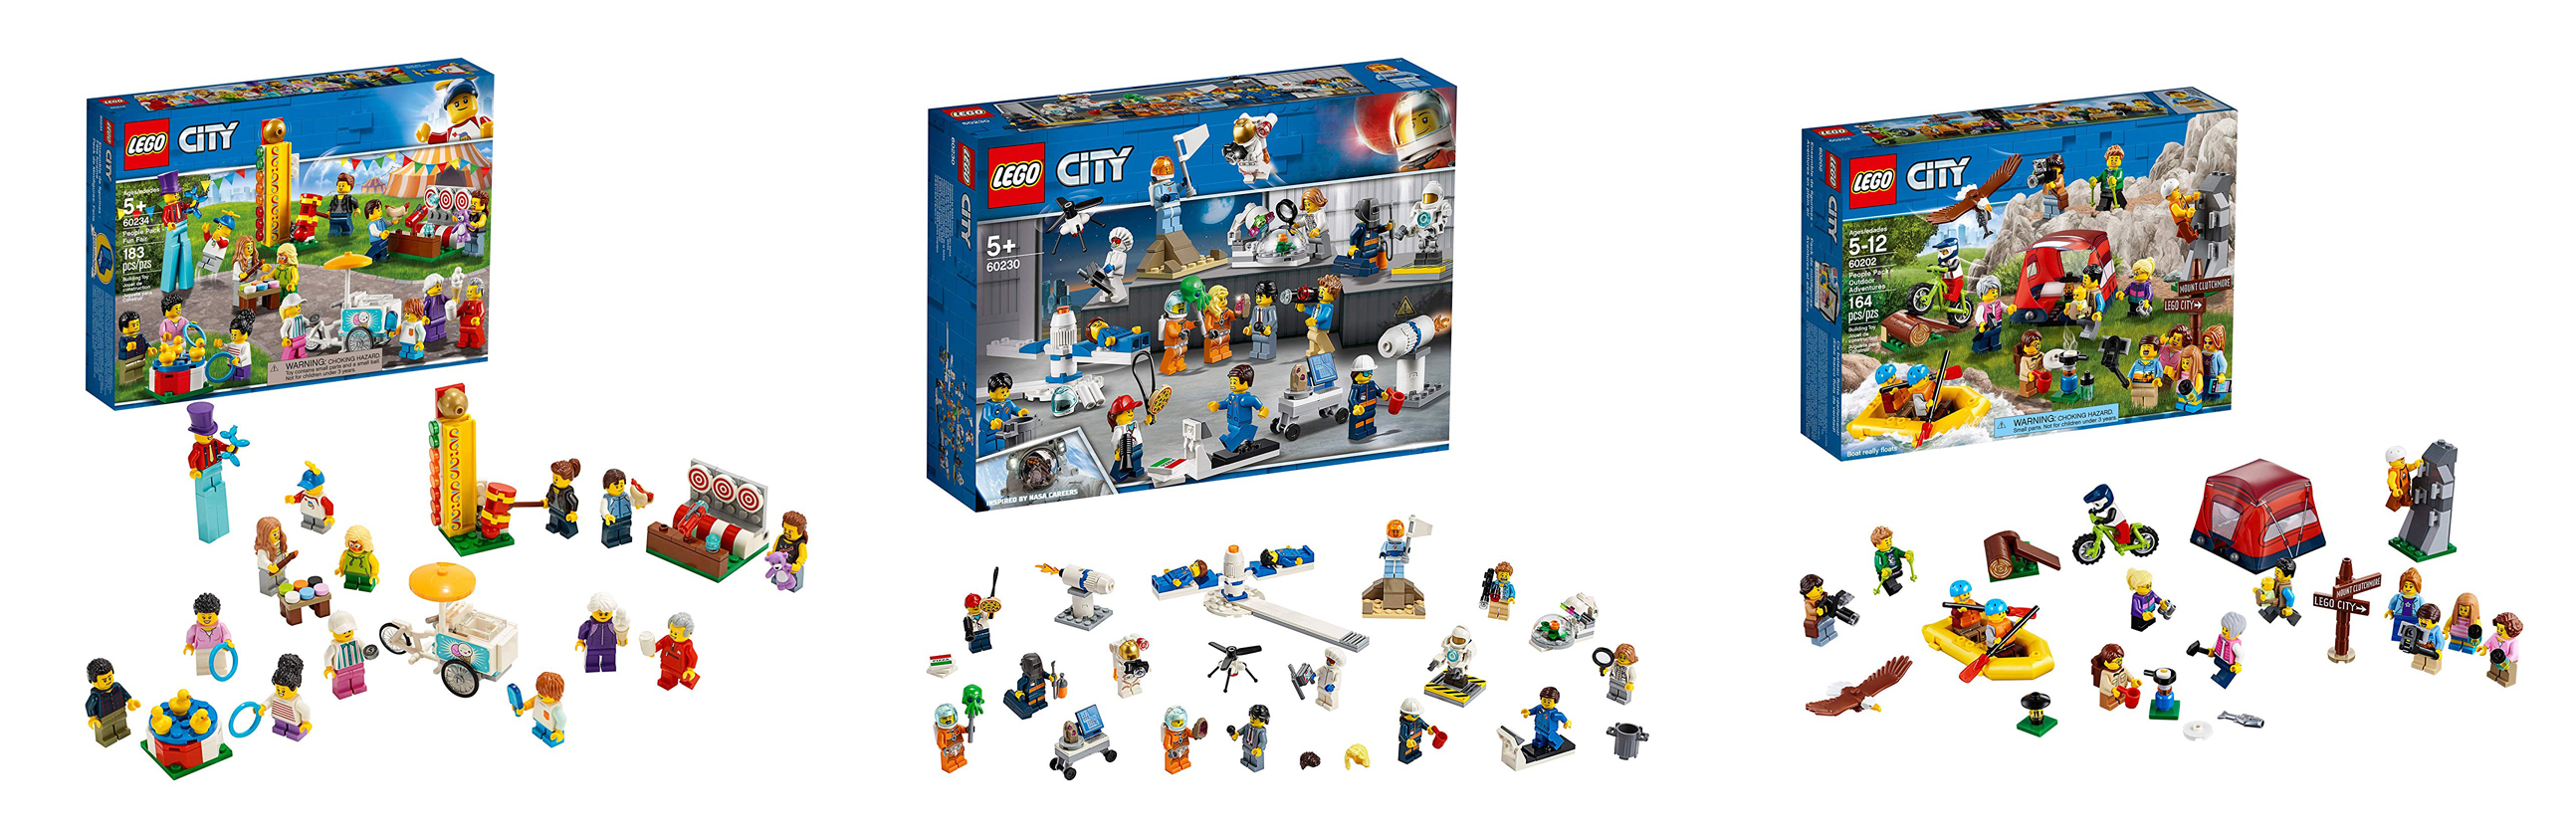 world of lego minifigures: people pack sets